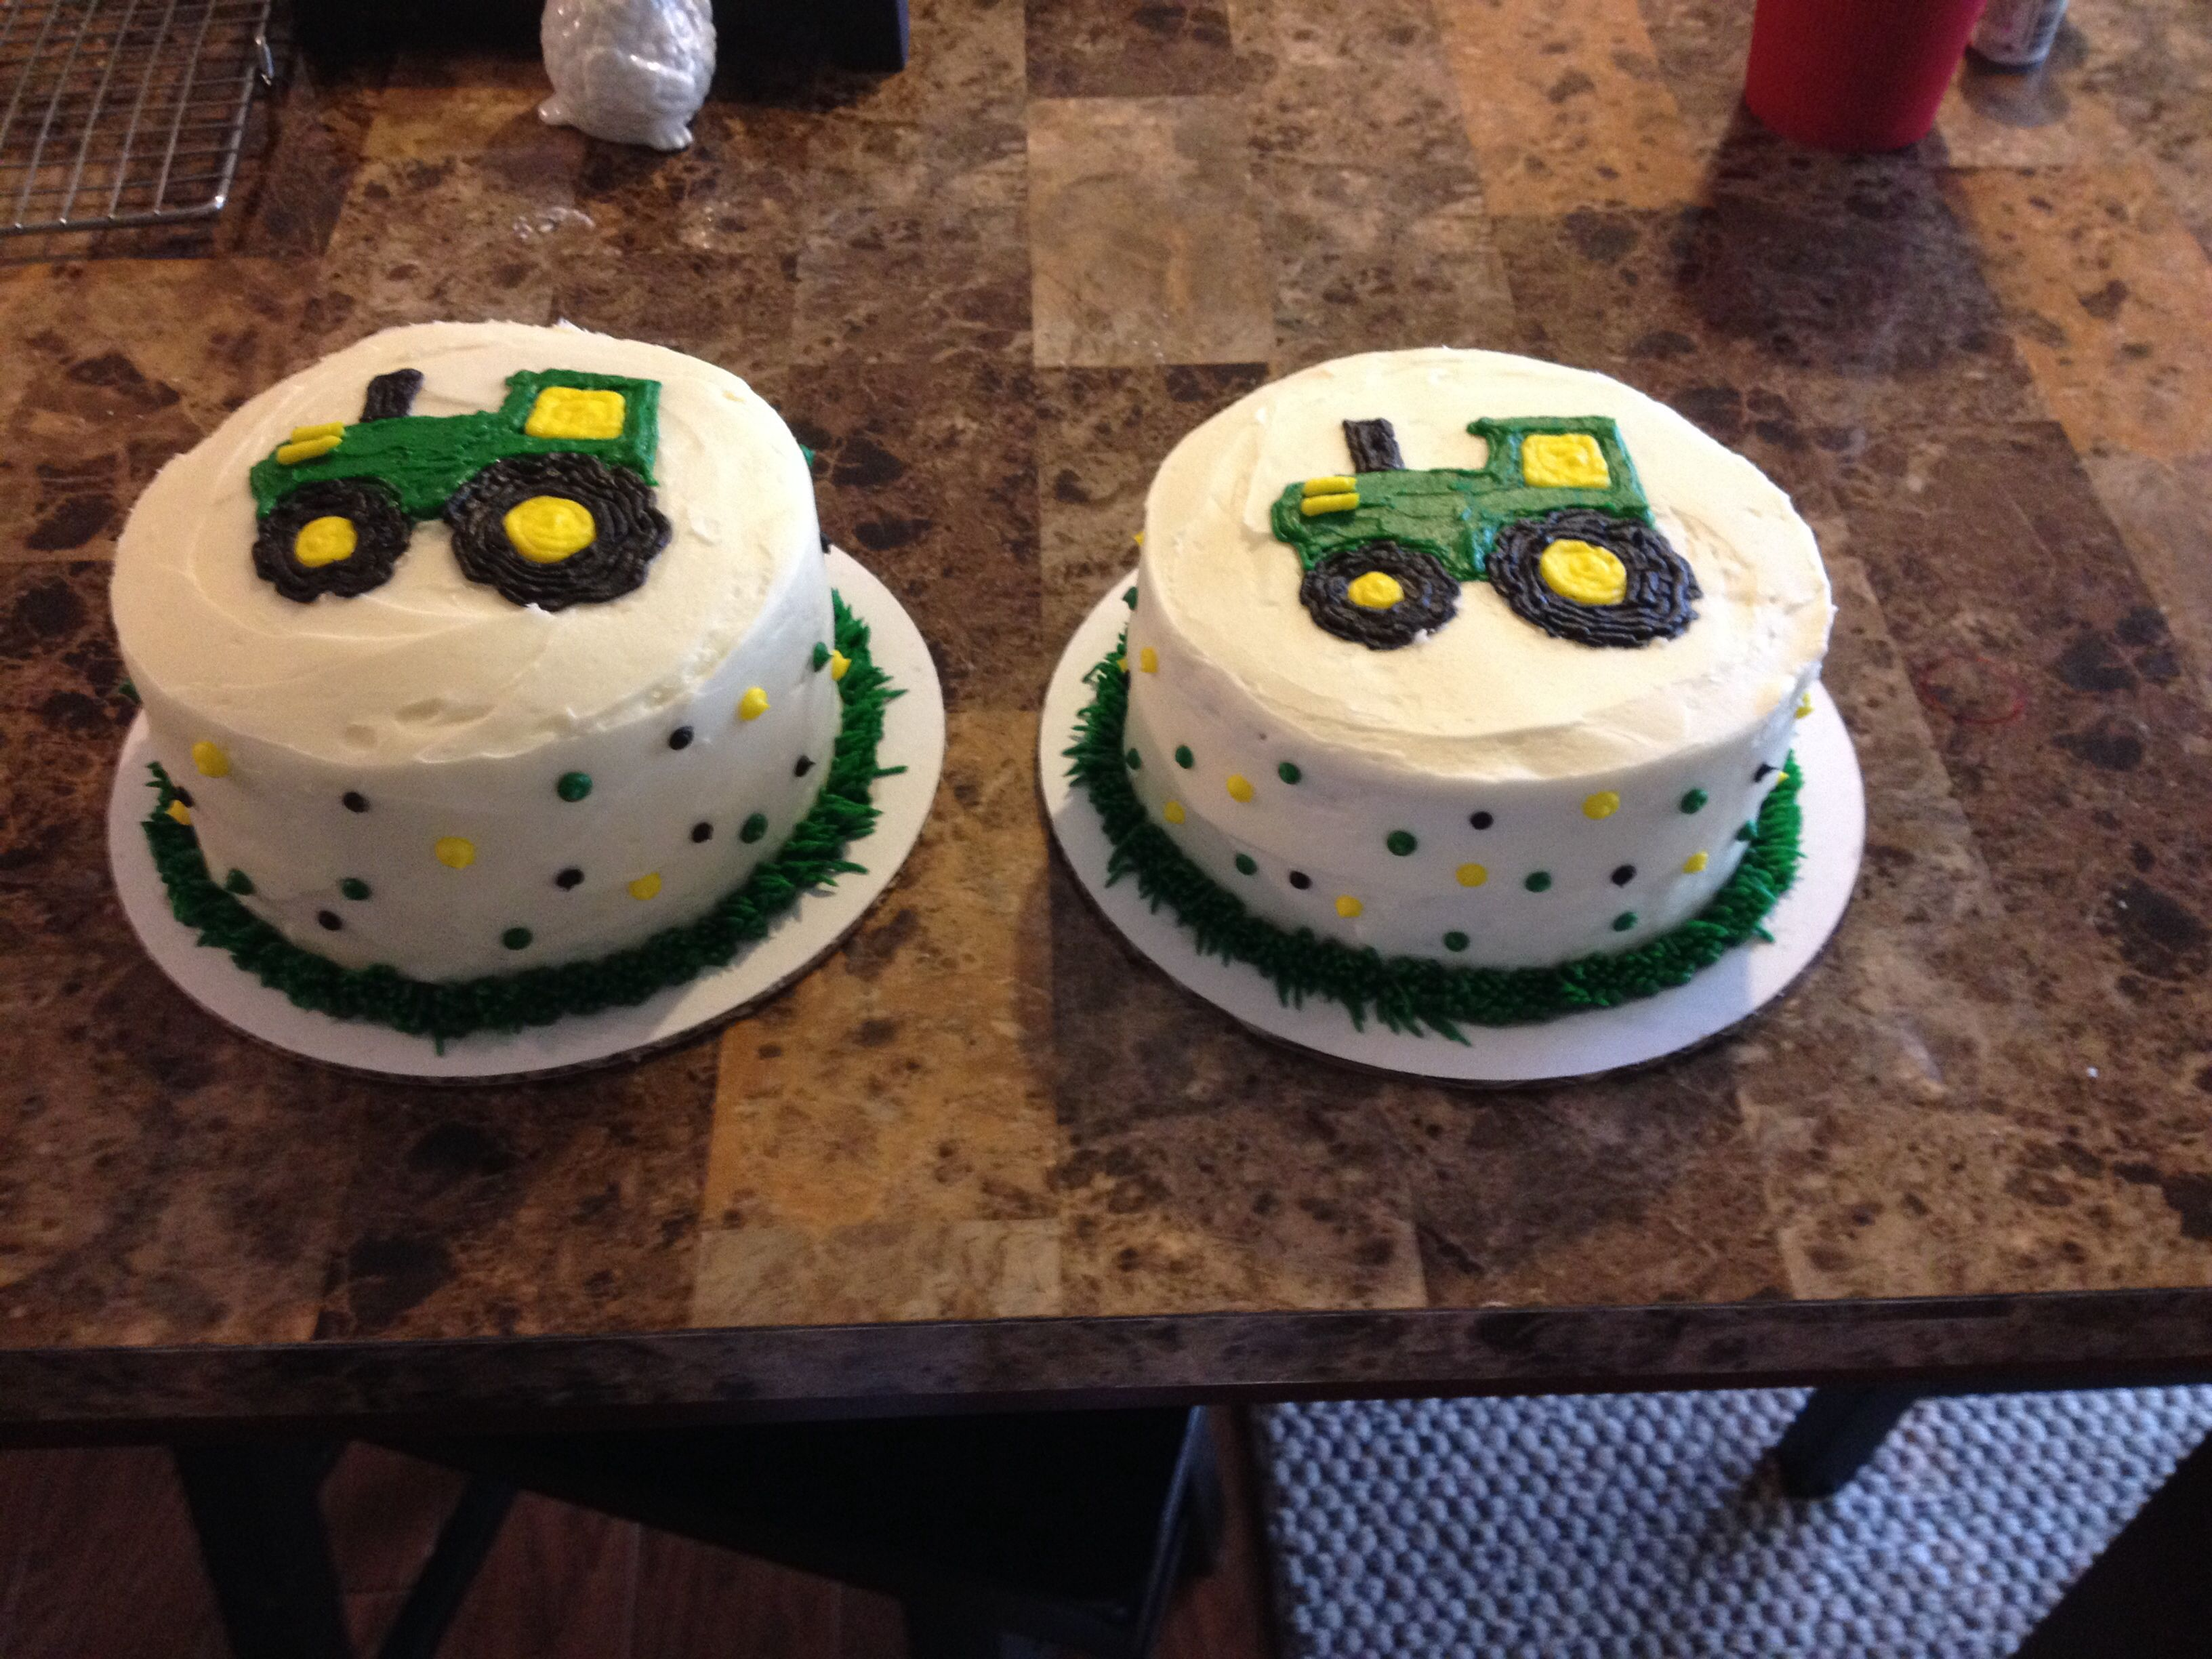 Tractor smash cakes Cakes I made Pinterest Smash cakes